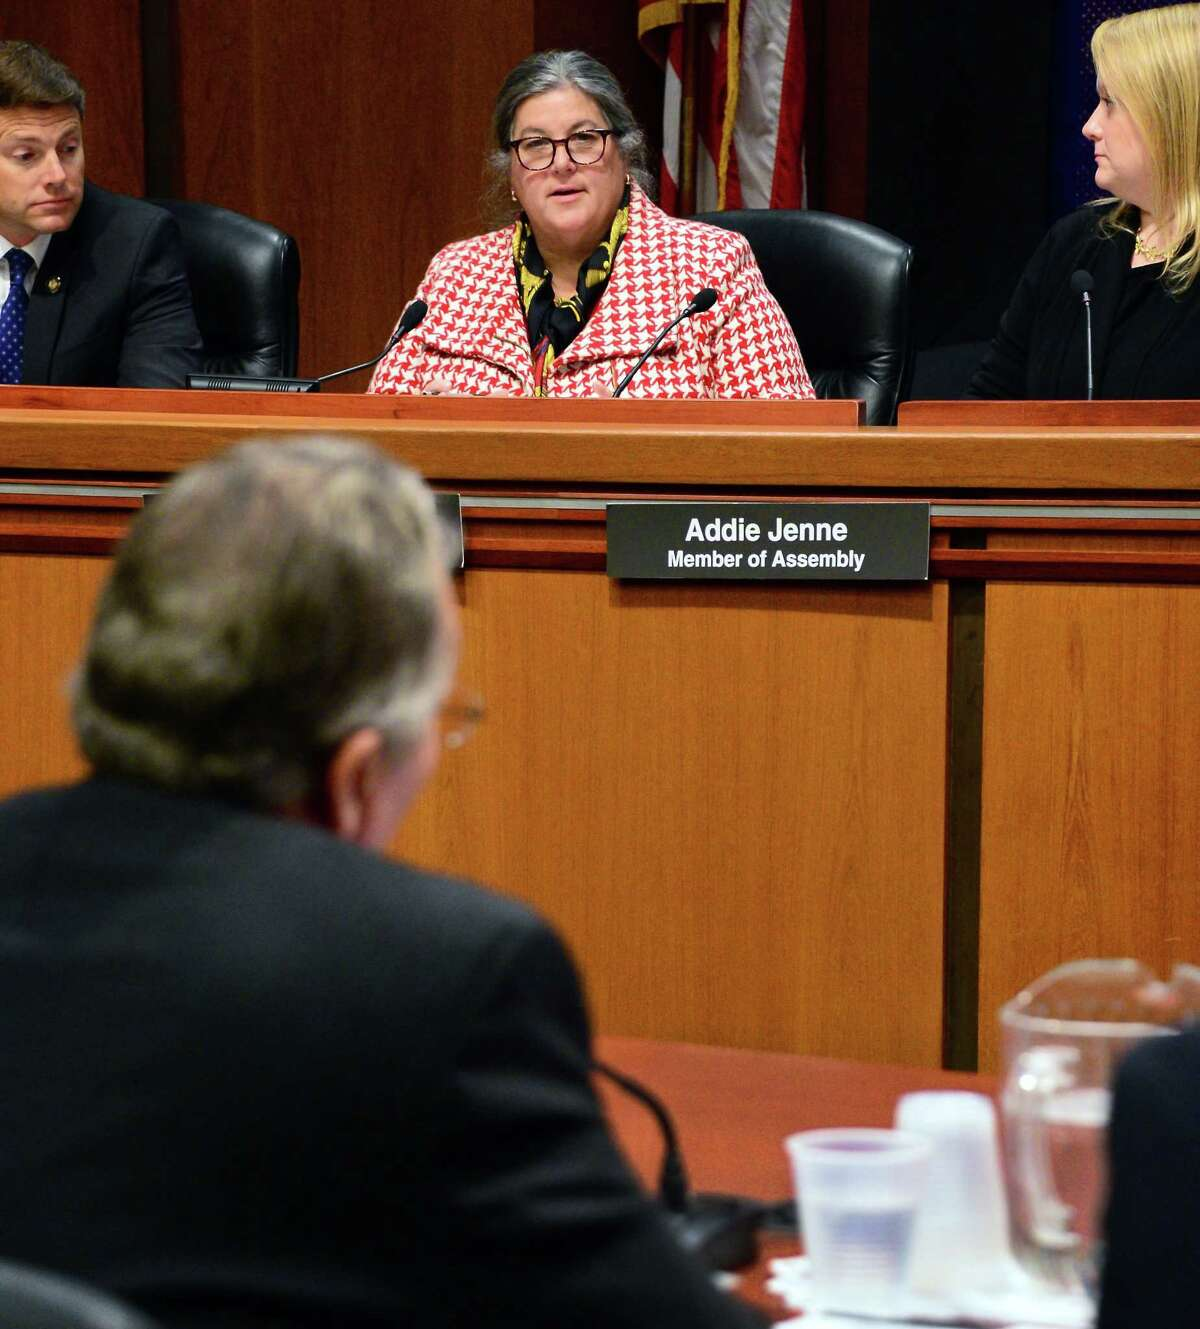 Assemblywoman Carrie Woerner, top center, questions State Commissioner of Agriculture & Markets Richard Ball during the Assembly Standing Committee of Agriculture's oversight of the SFY 2017-2018 State Budget for the NYS Dept. of Agriculture and Markets Tuesday Nov. 28, 2018 in Albany, NY. (John Carl D'Annibale / Times Union)